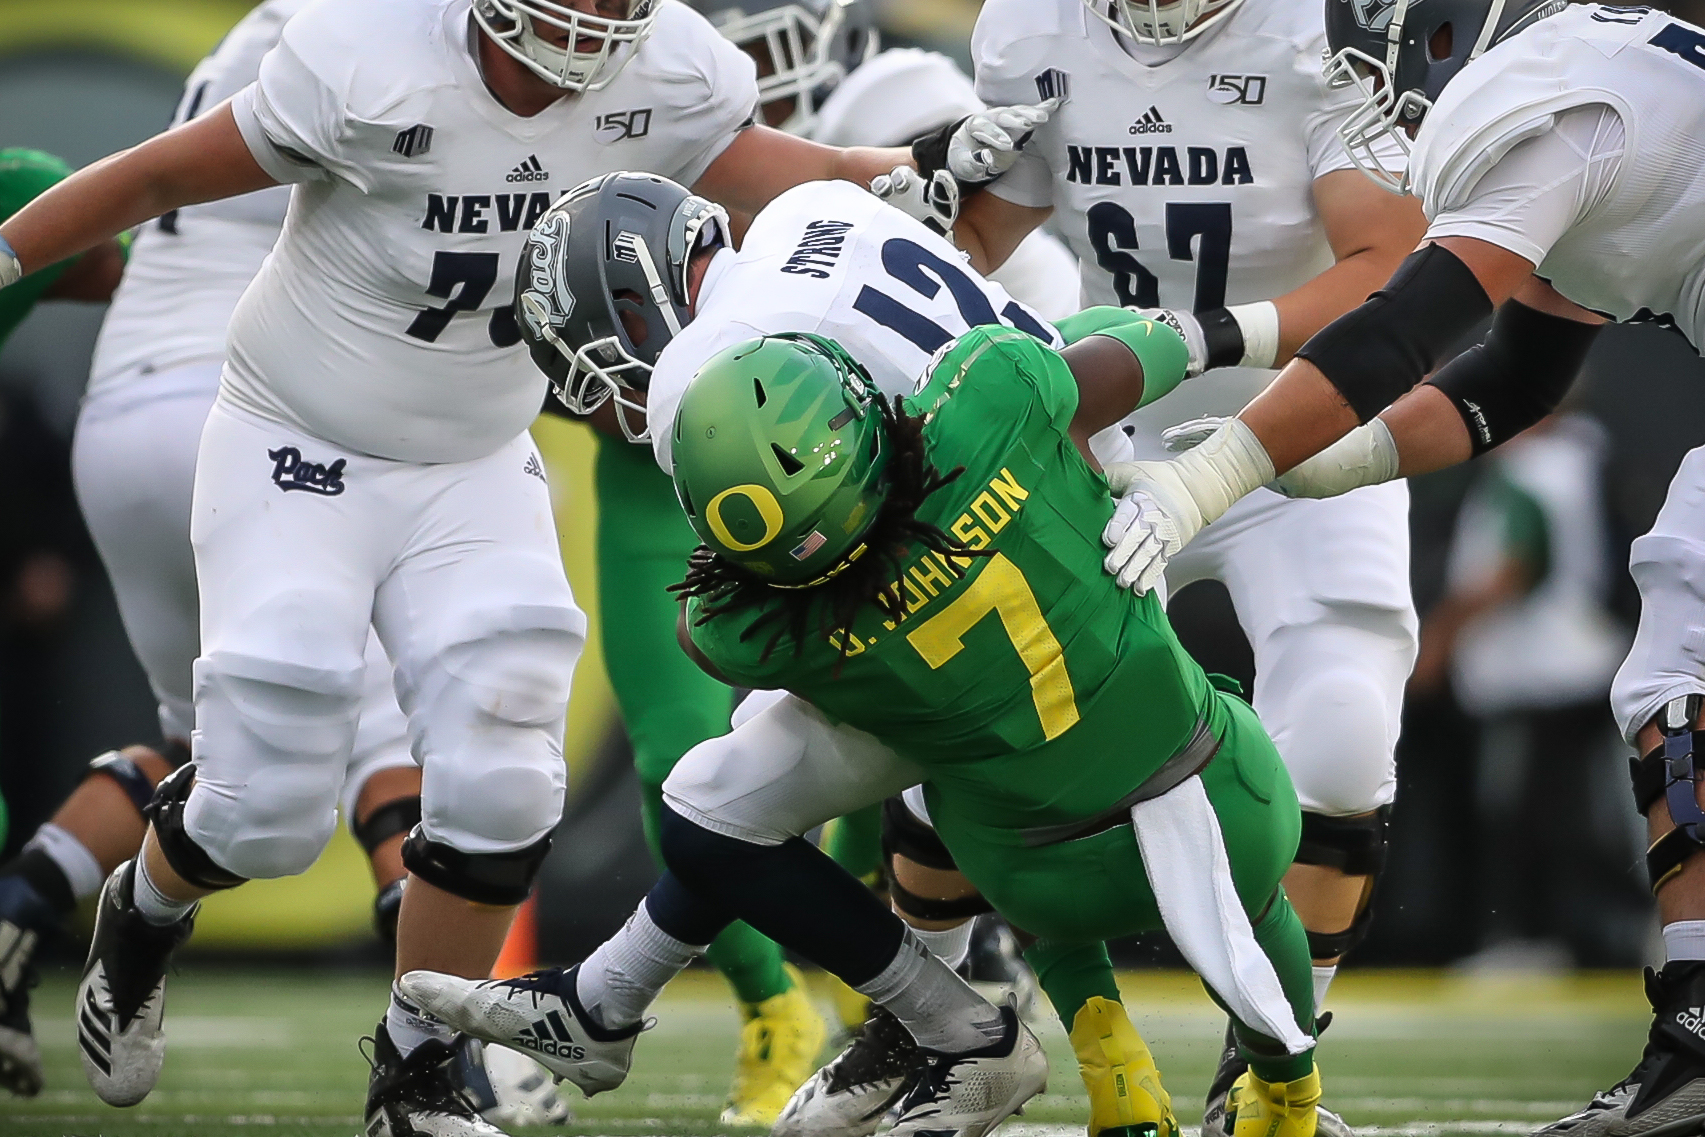 Goe: The Oregon Ducks leave no question while pounding